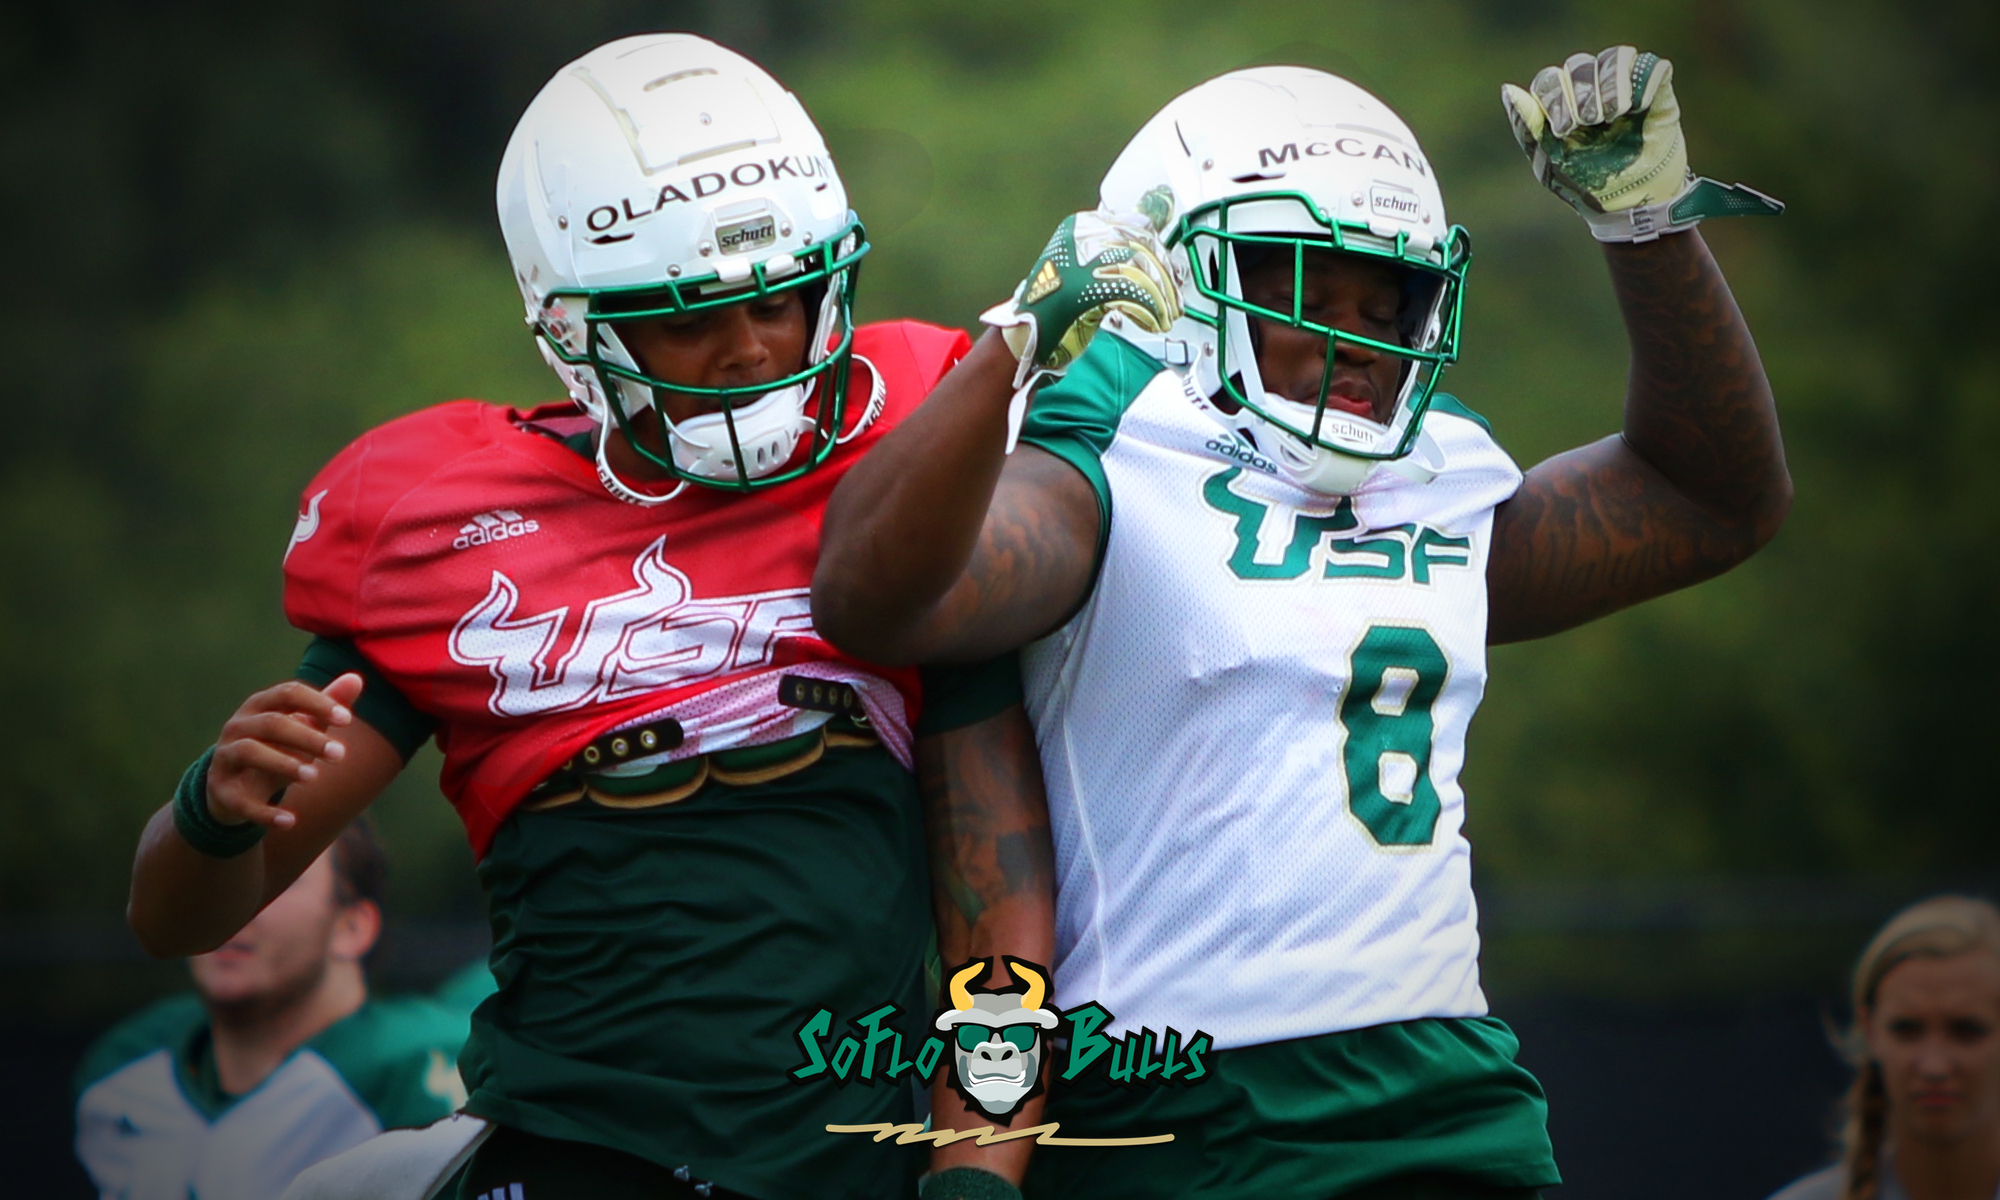 USF Football Fall Camp Notes 2018 - Day 11 - Tyre McCants and Chris Oladokun - by Will Turner - SoFloBulls.com (2000x1200)